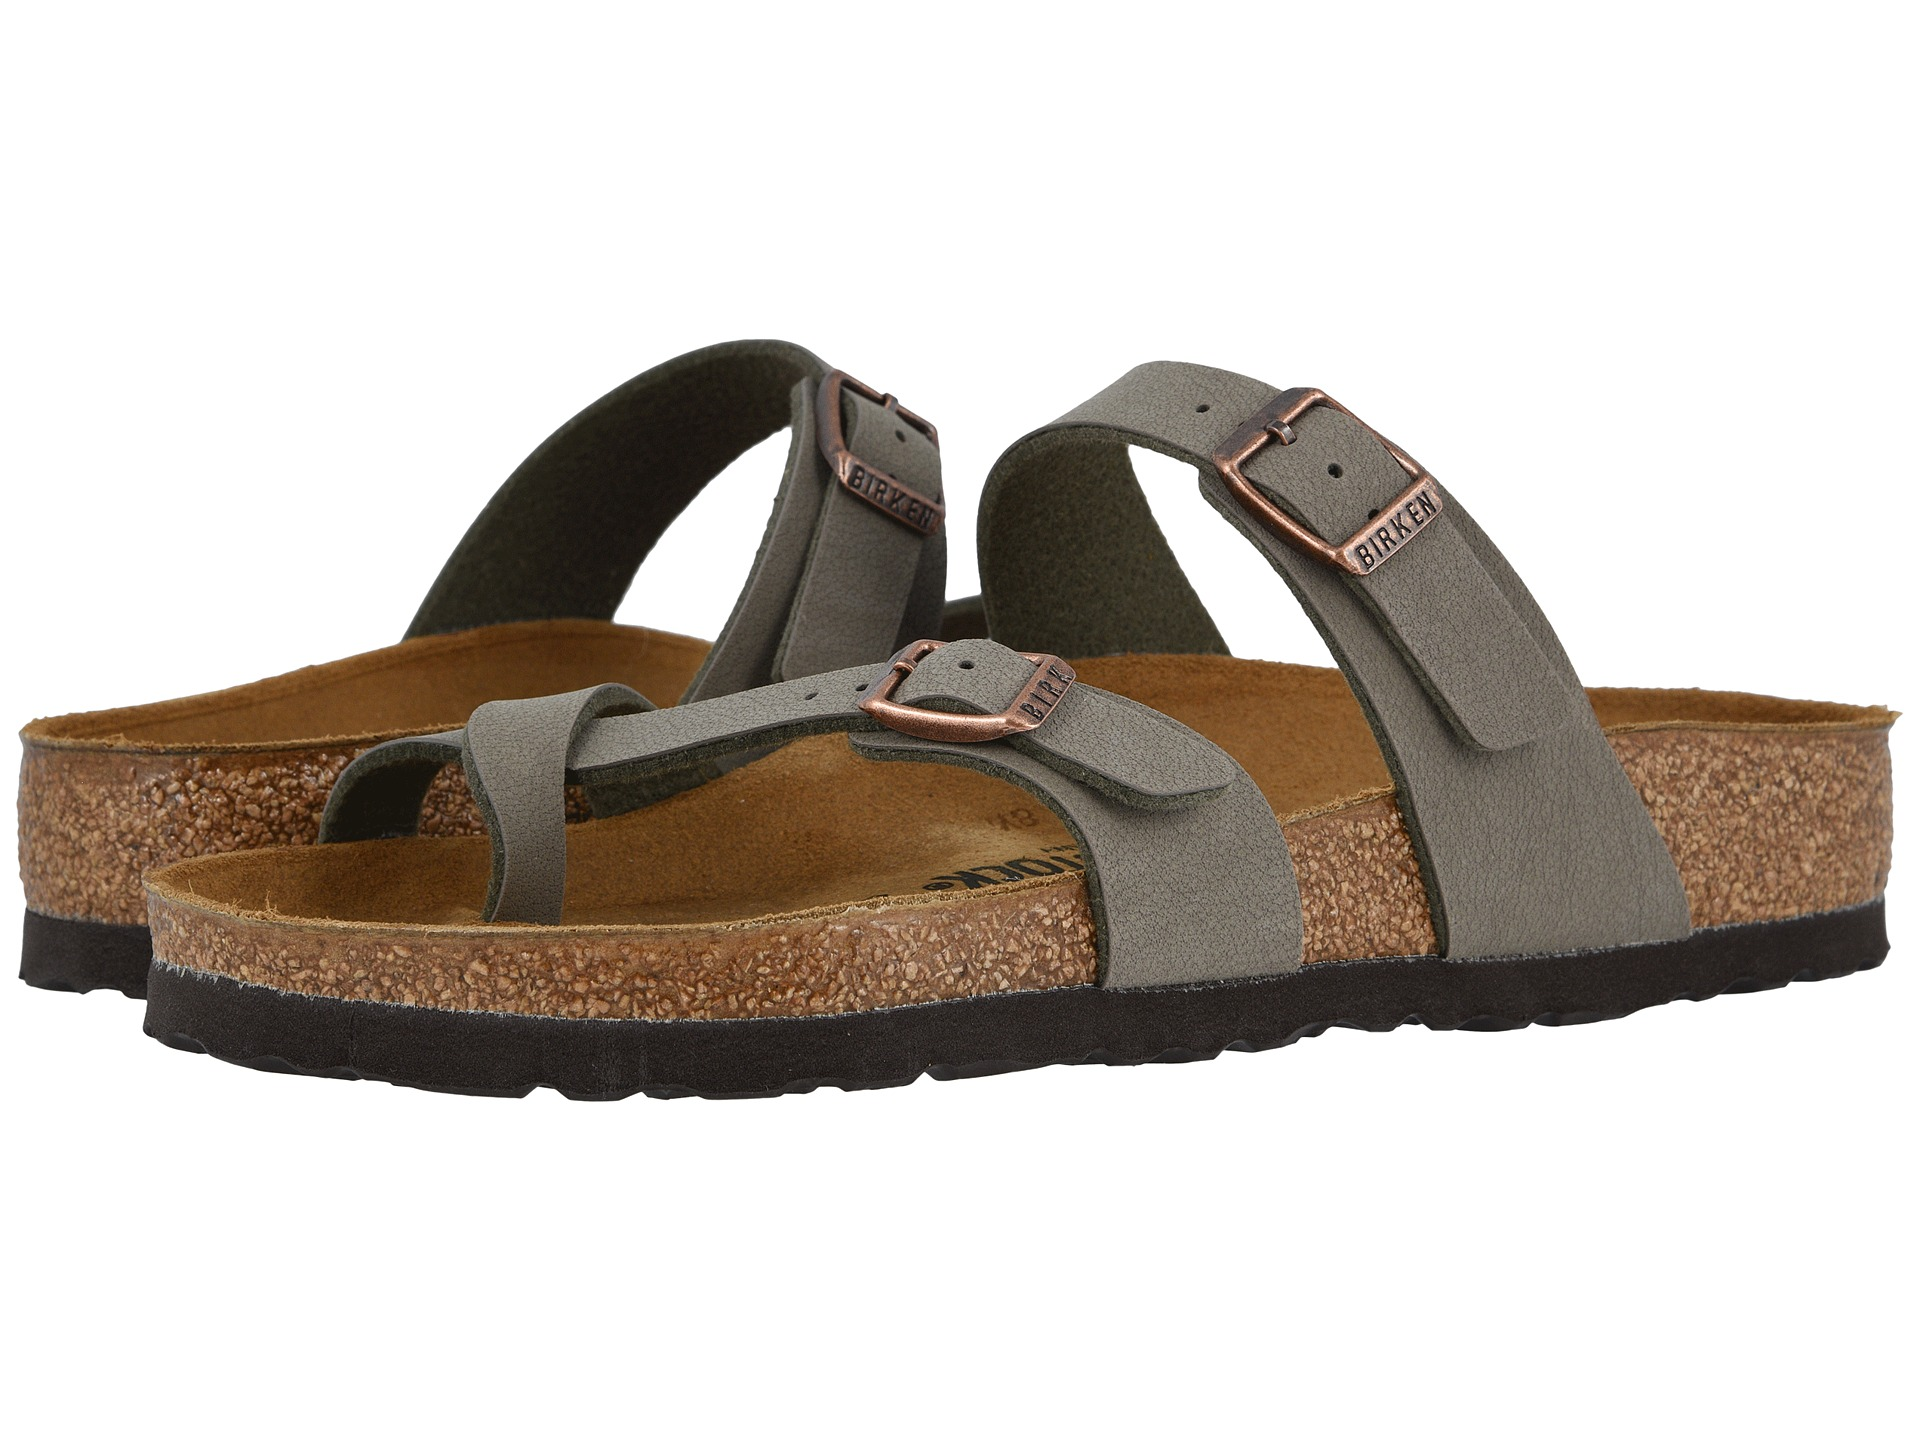 discount birkenstocks birkenstock outlet